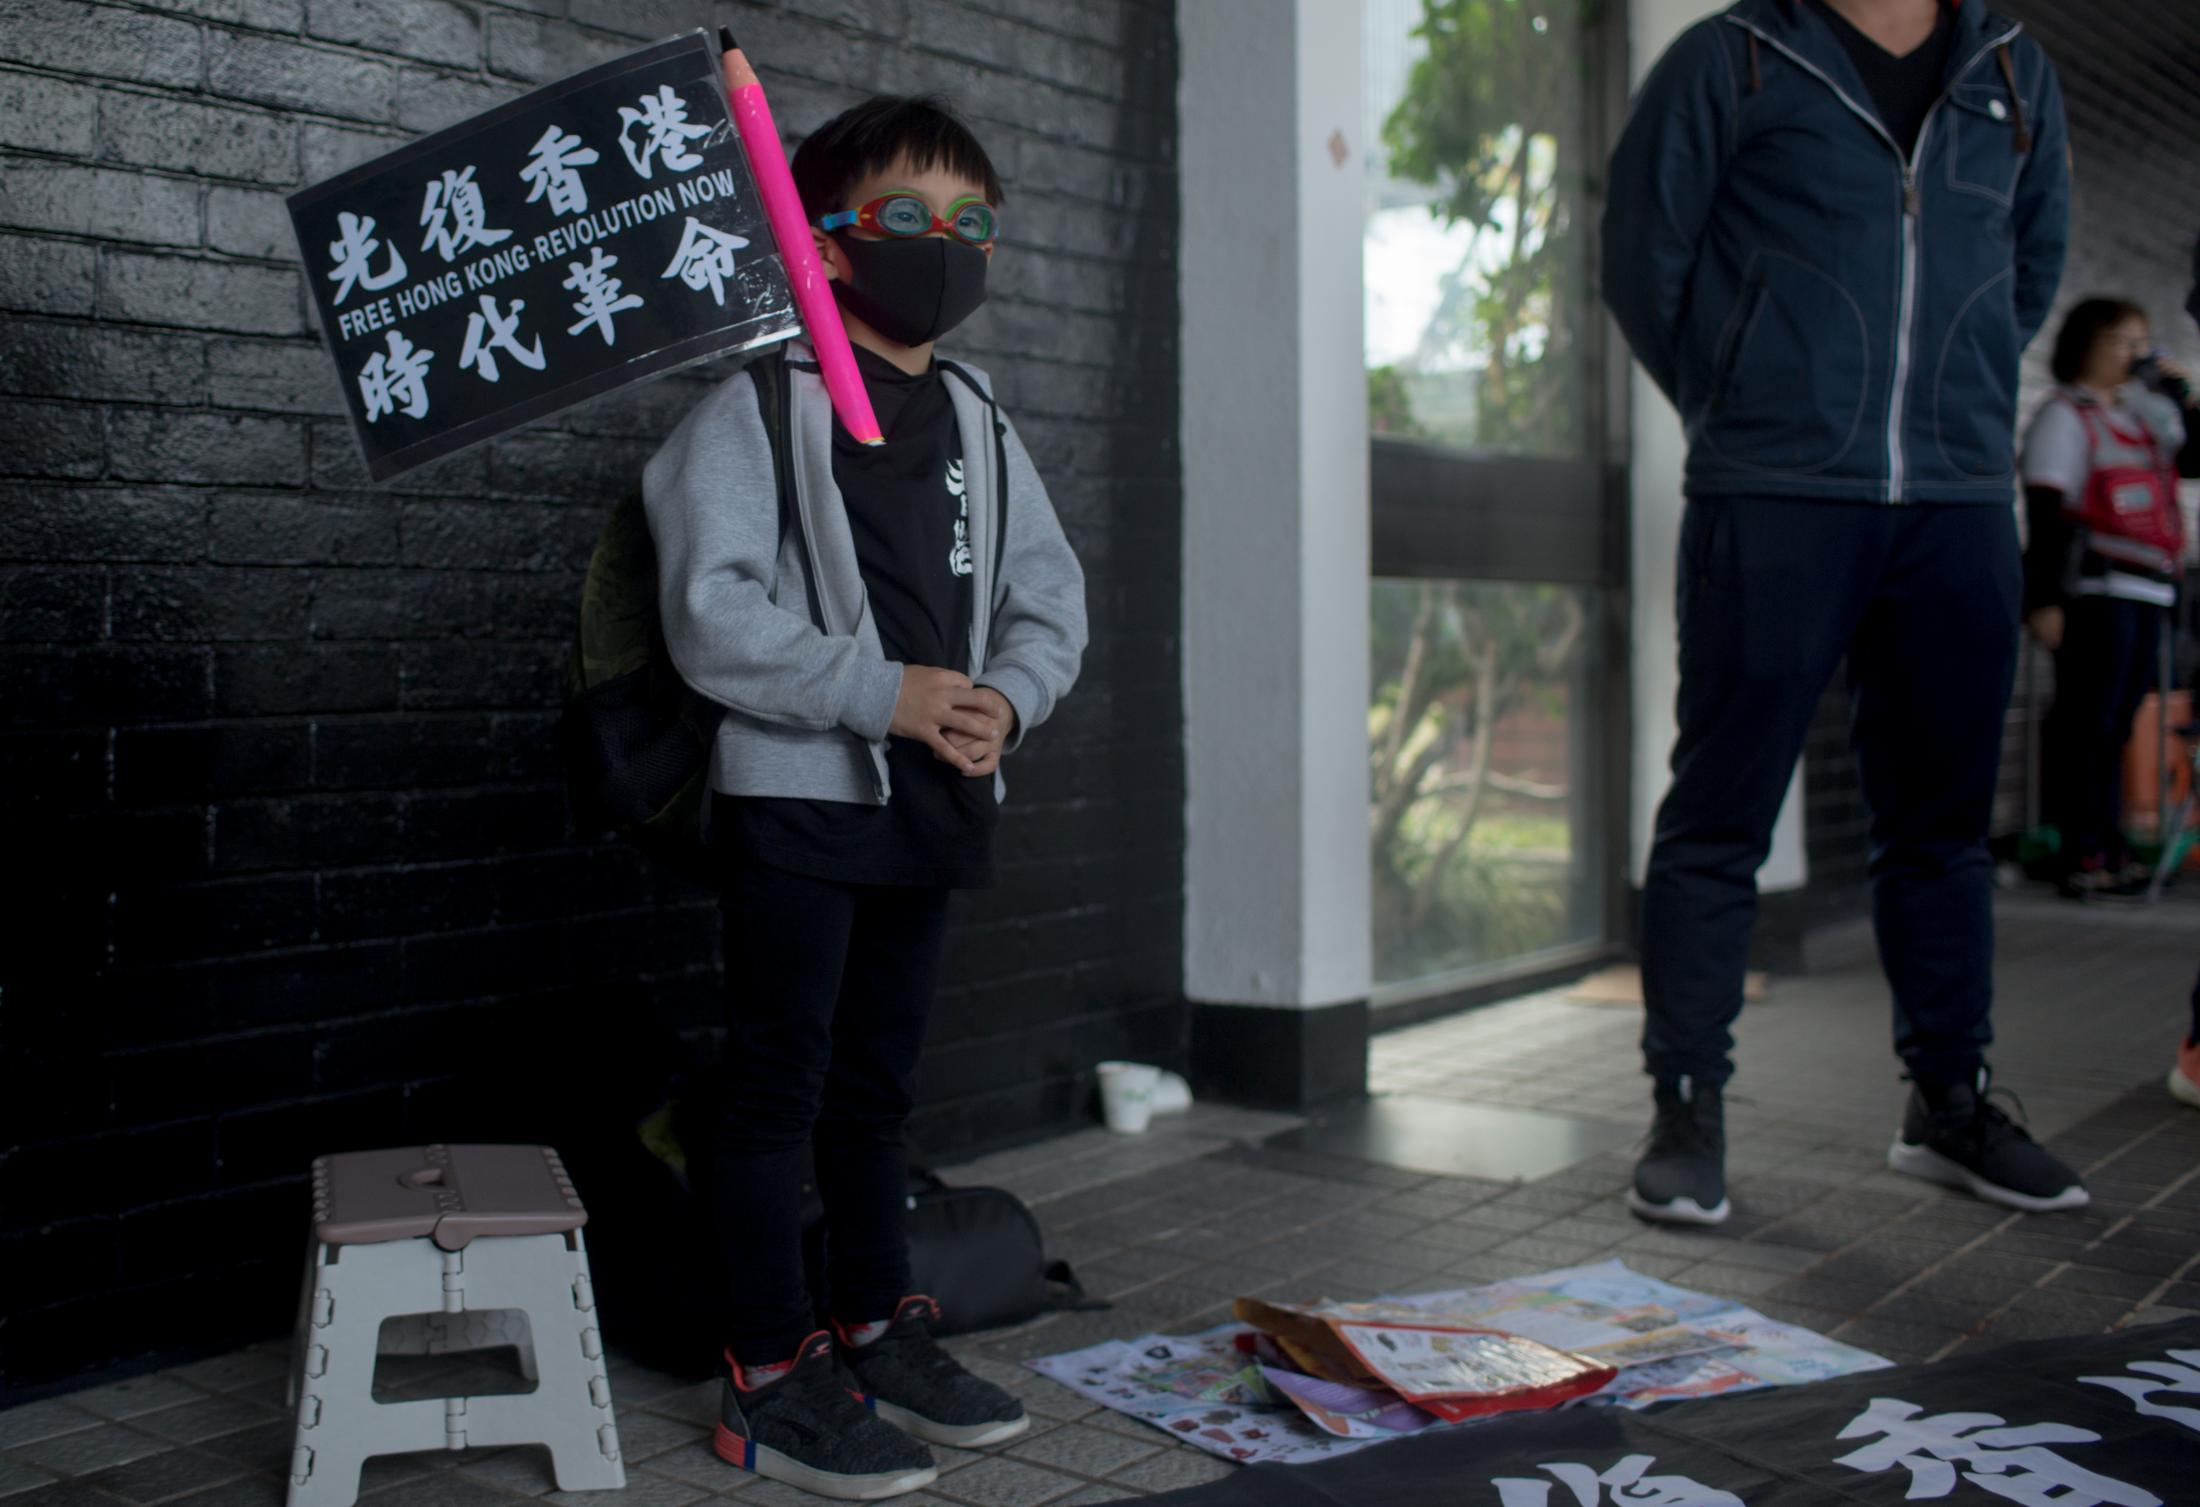 A boy stands at the edge of the Karma to Commies pre-march assembly holding a small pro-democracy flag near his family at Edinburgh Place on January 12, 2020, in Central Hong Kong.